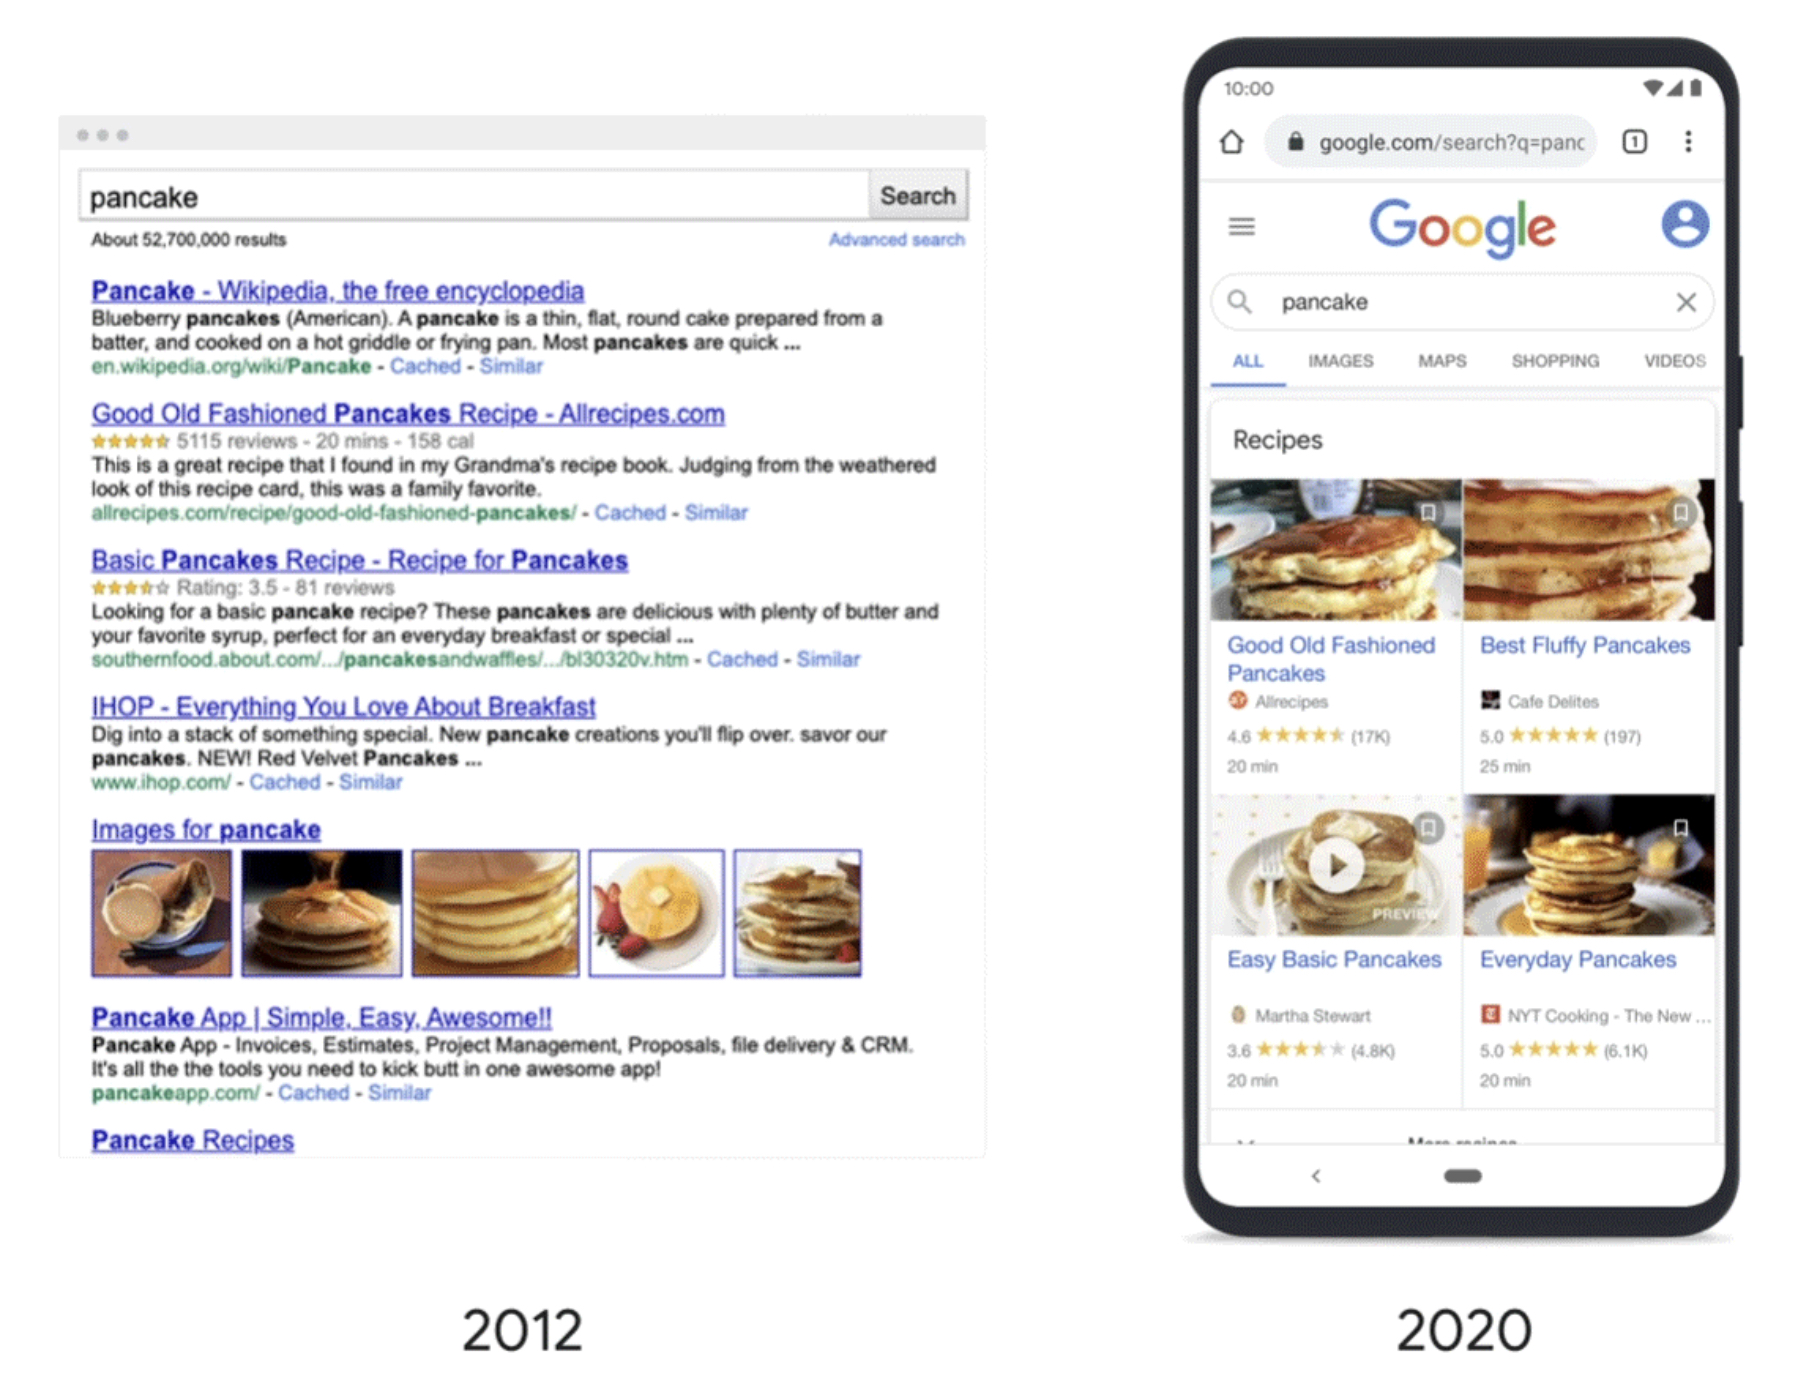 Google Explains How it Organizes Information in Search